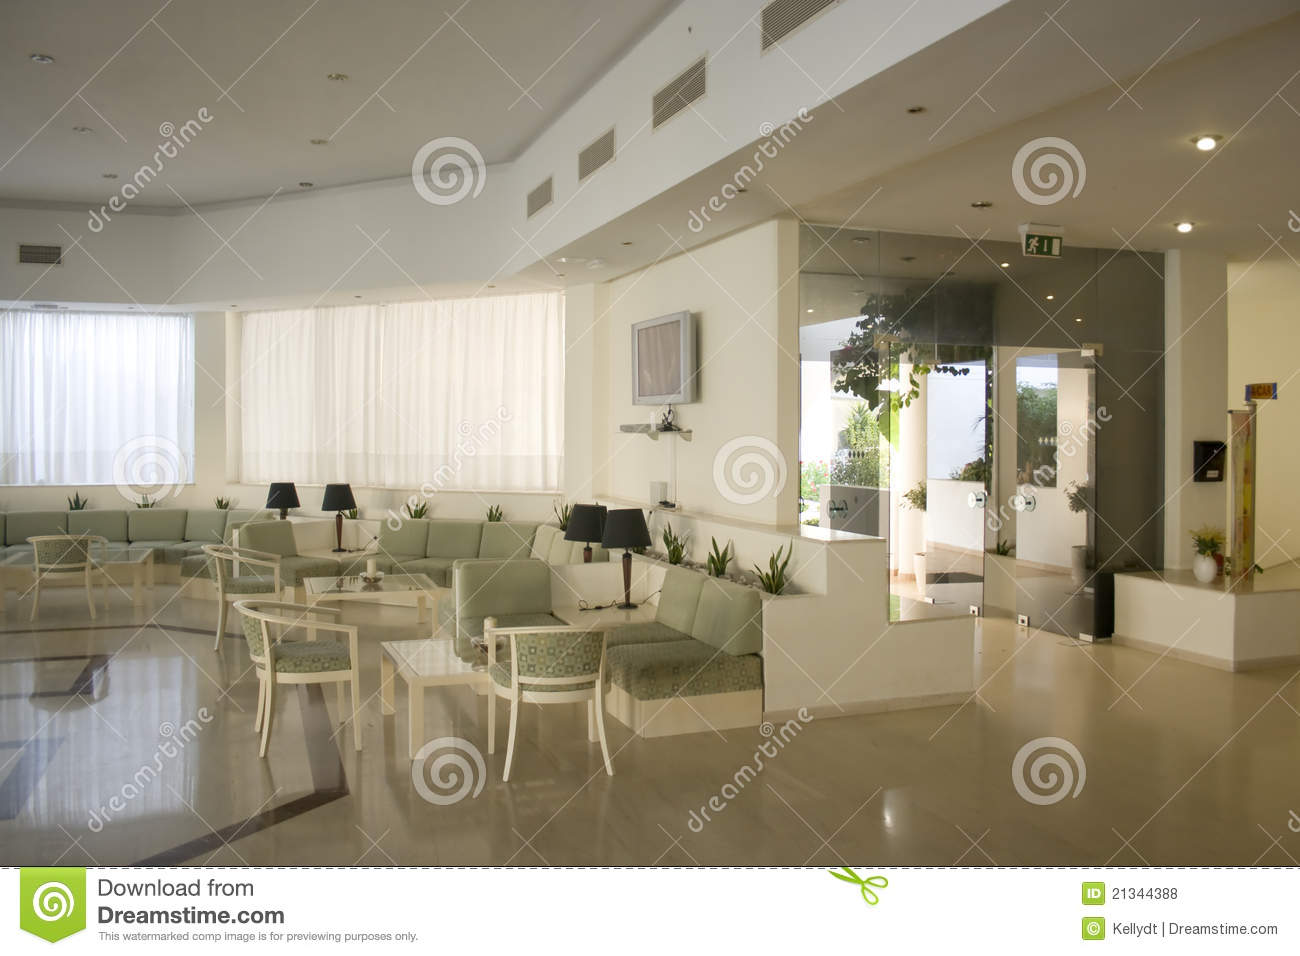 Foyer Hotel : Hotel foyer stock photo. image of greece lobby 21344388